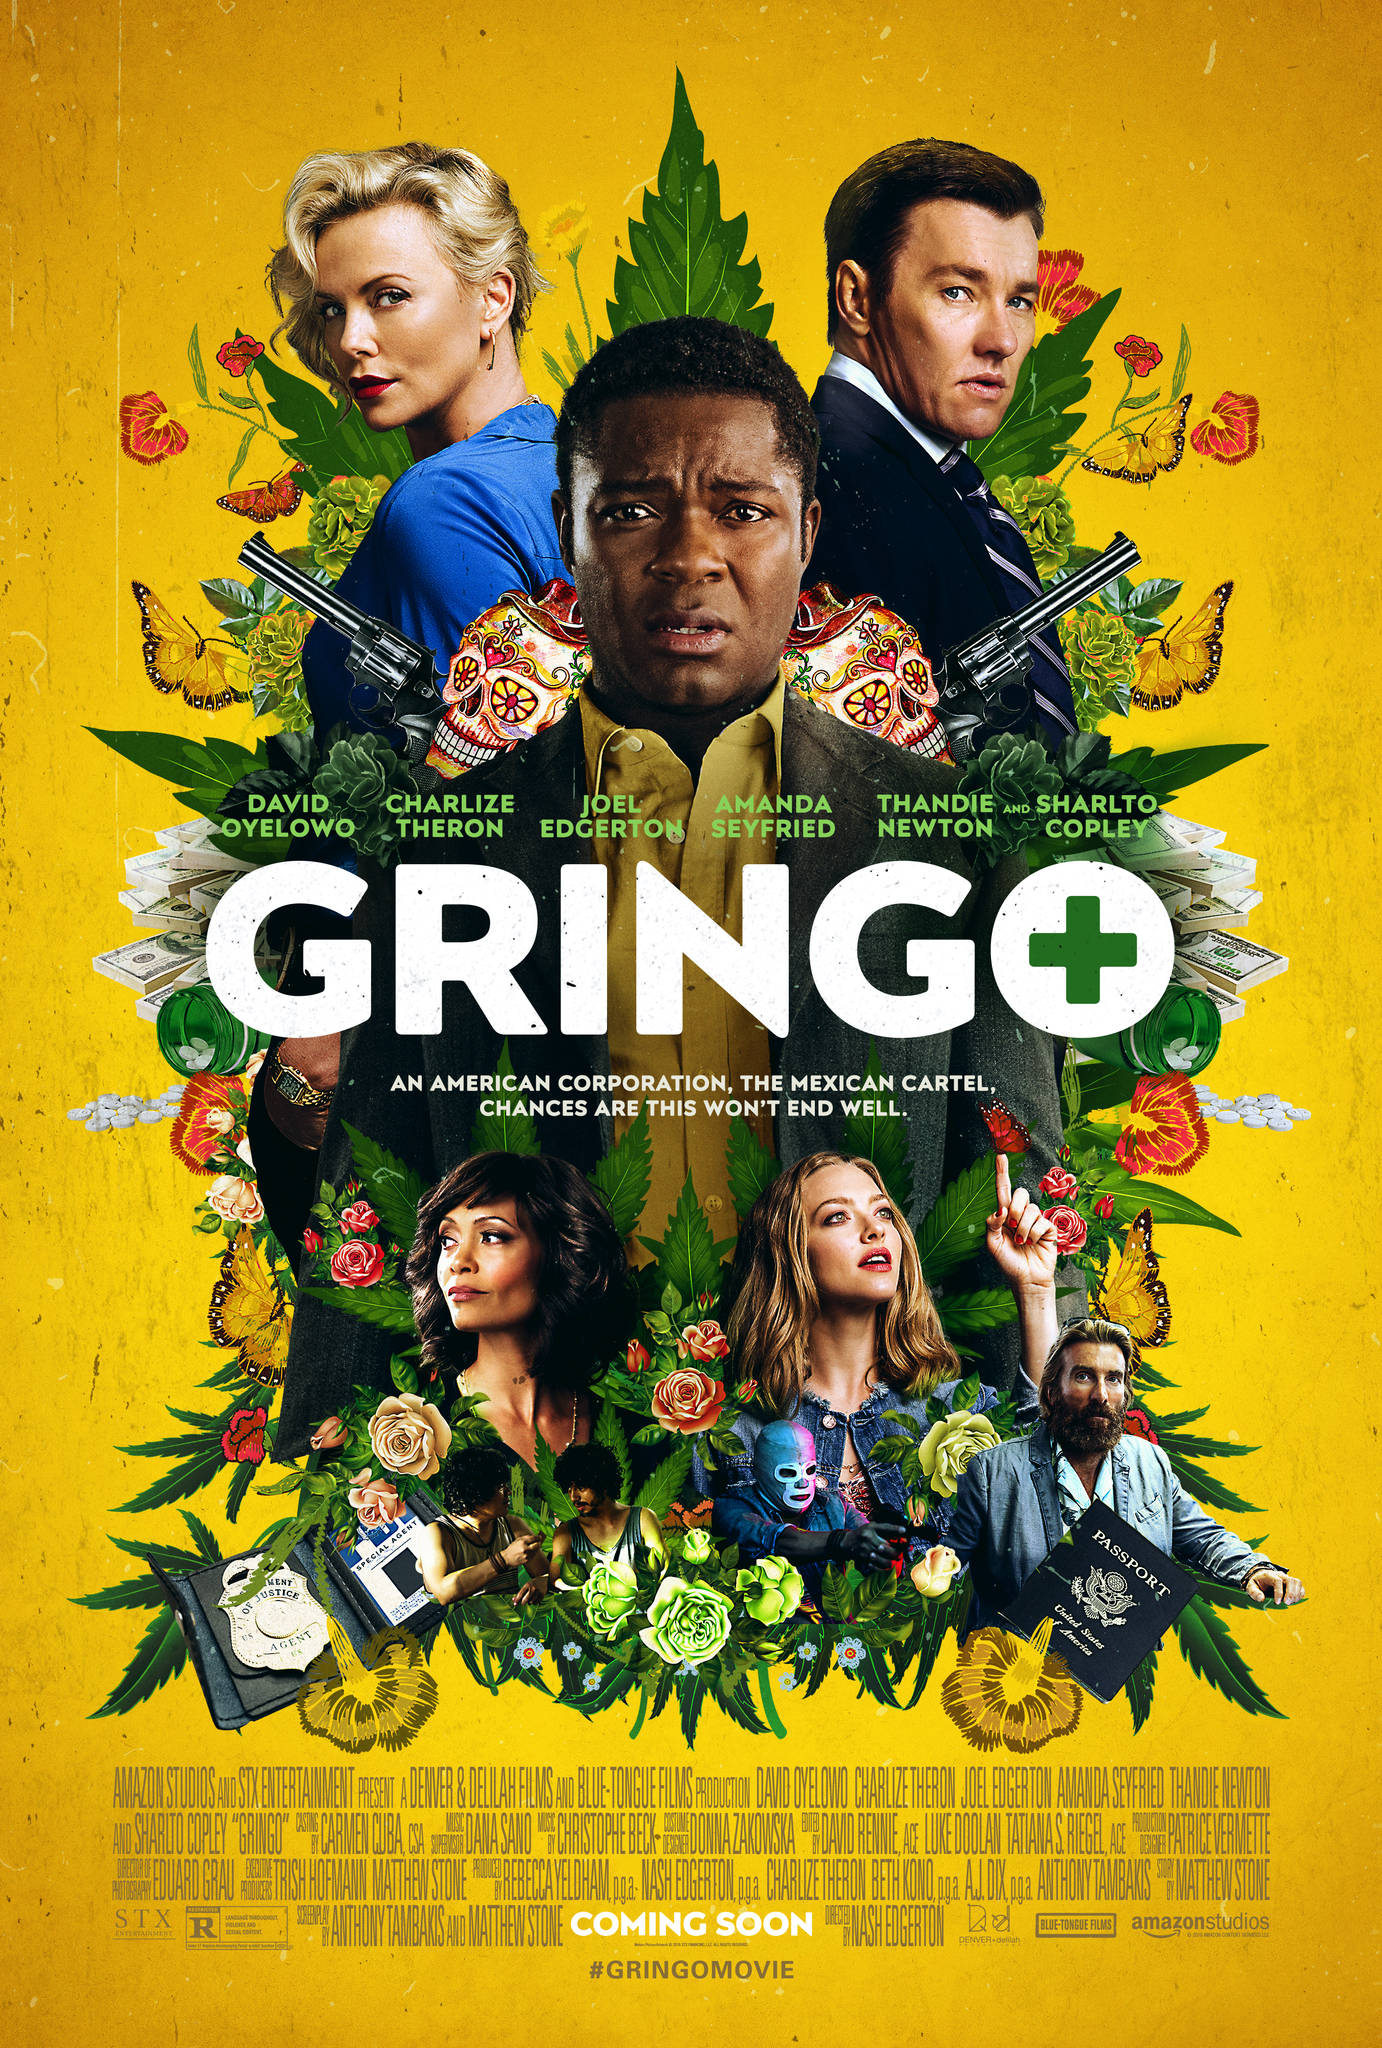 Gringo 2018 Hindi ORG Dual Audio 480p BluRay ESubs 400MB x264 AAC